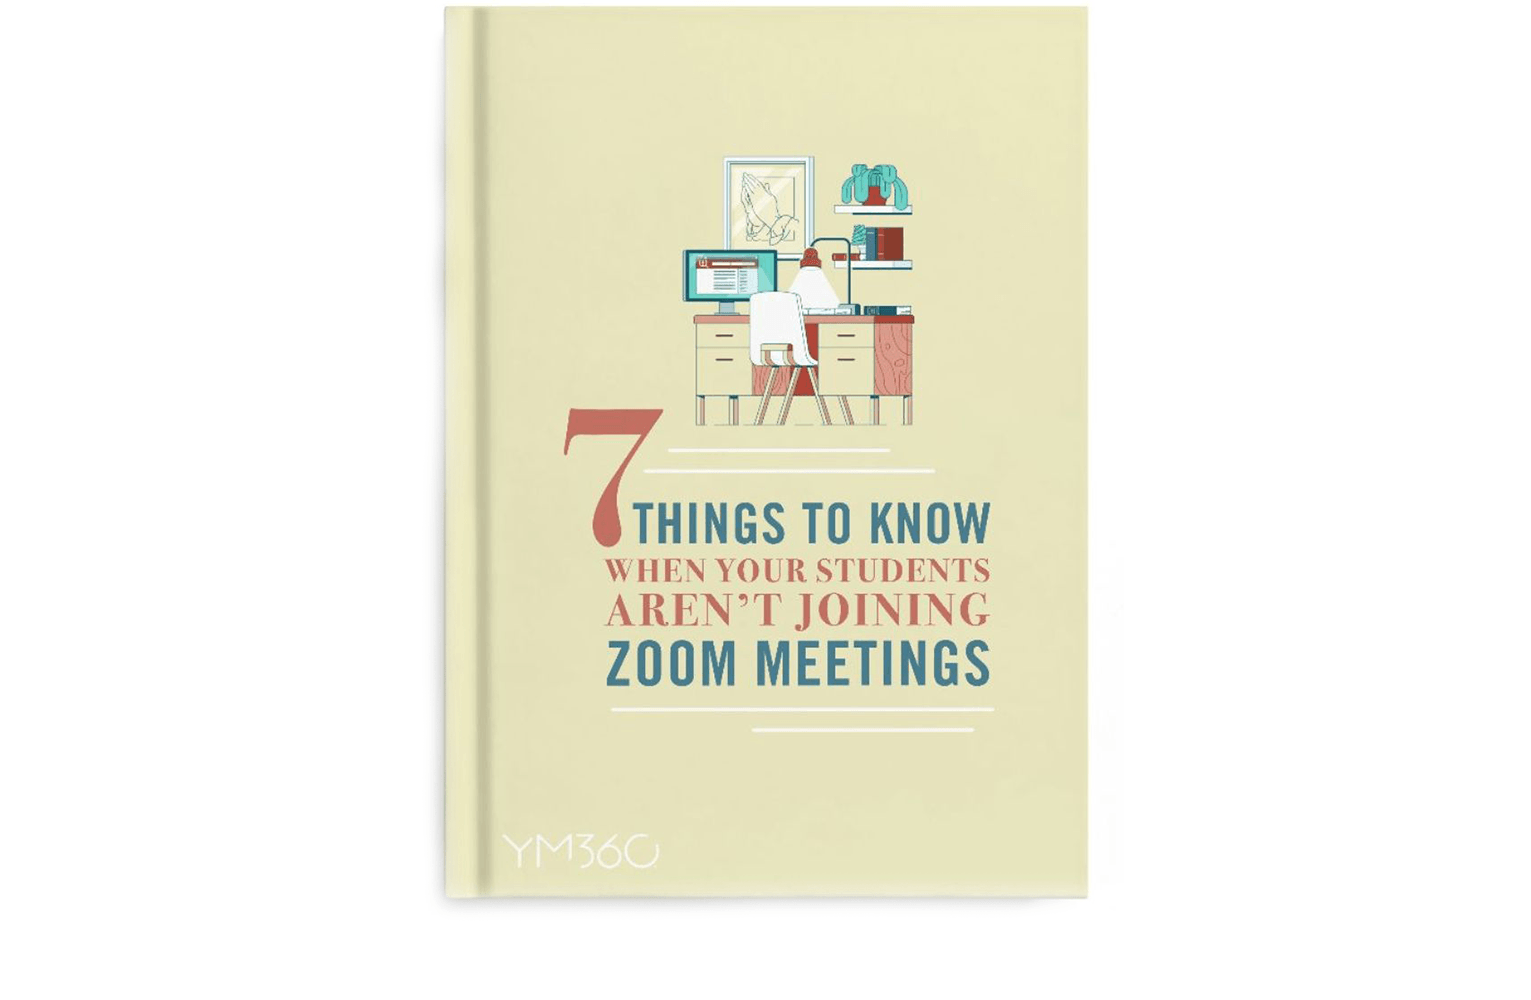 7 Things to Know When Students Aren't Joining Zoom Meetings